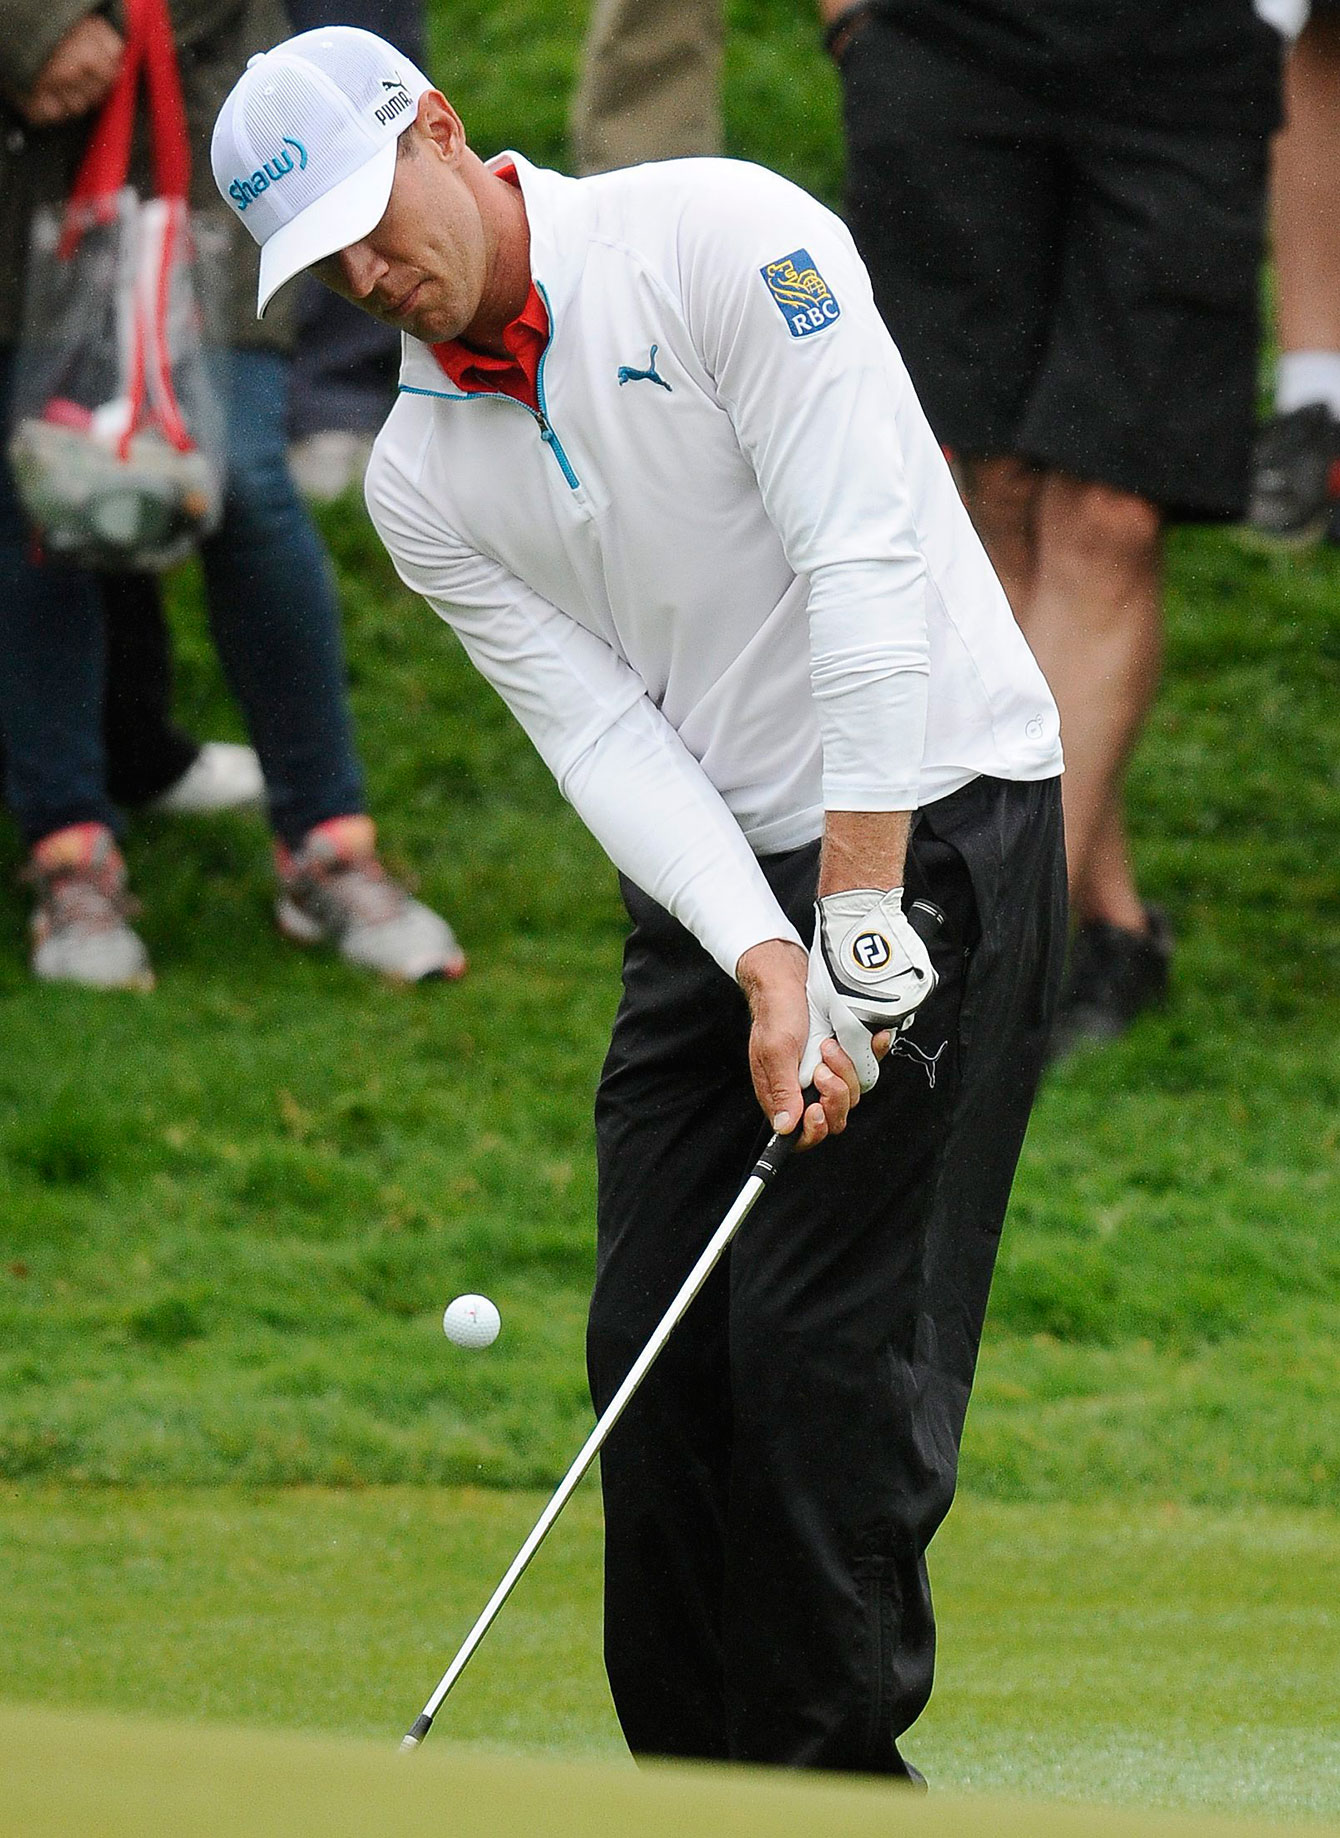 Graham DeLaet at the Travelers Championship in Connecticut on June 28, 2015.